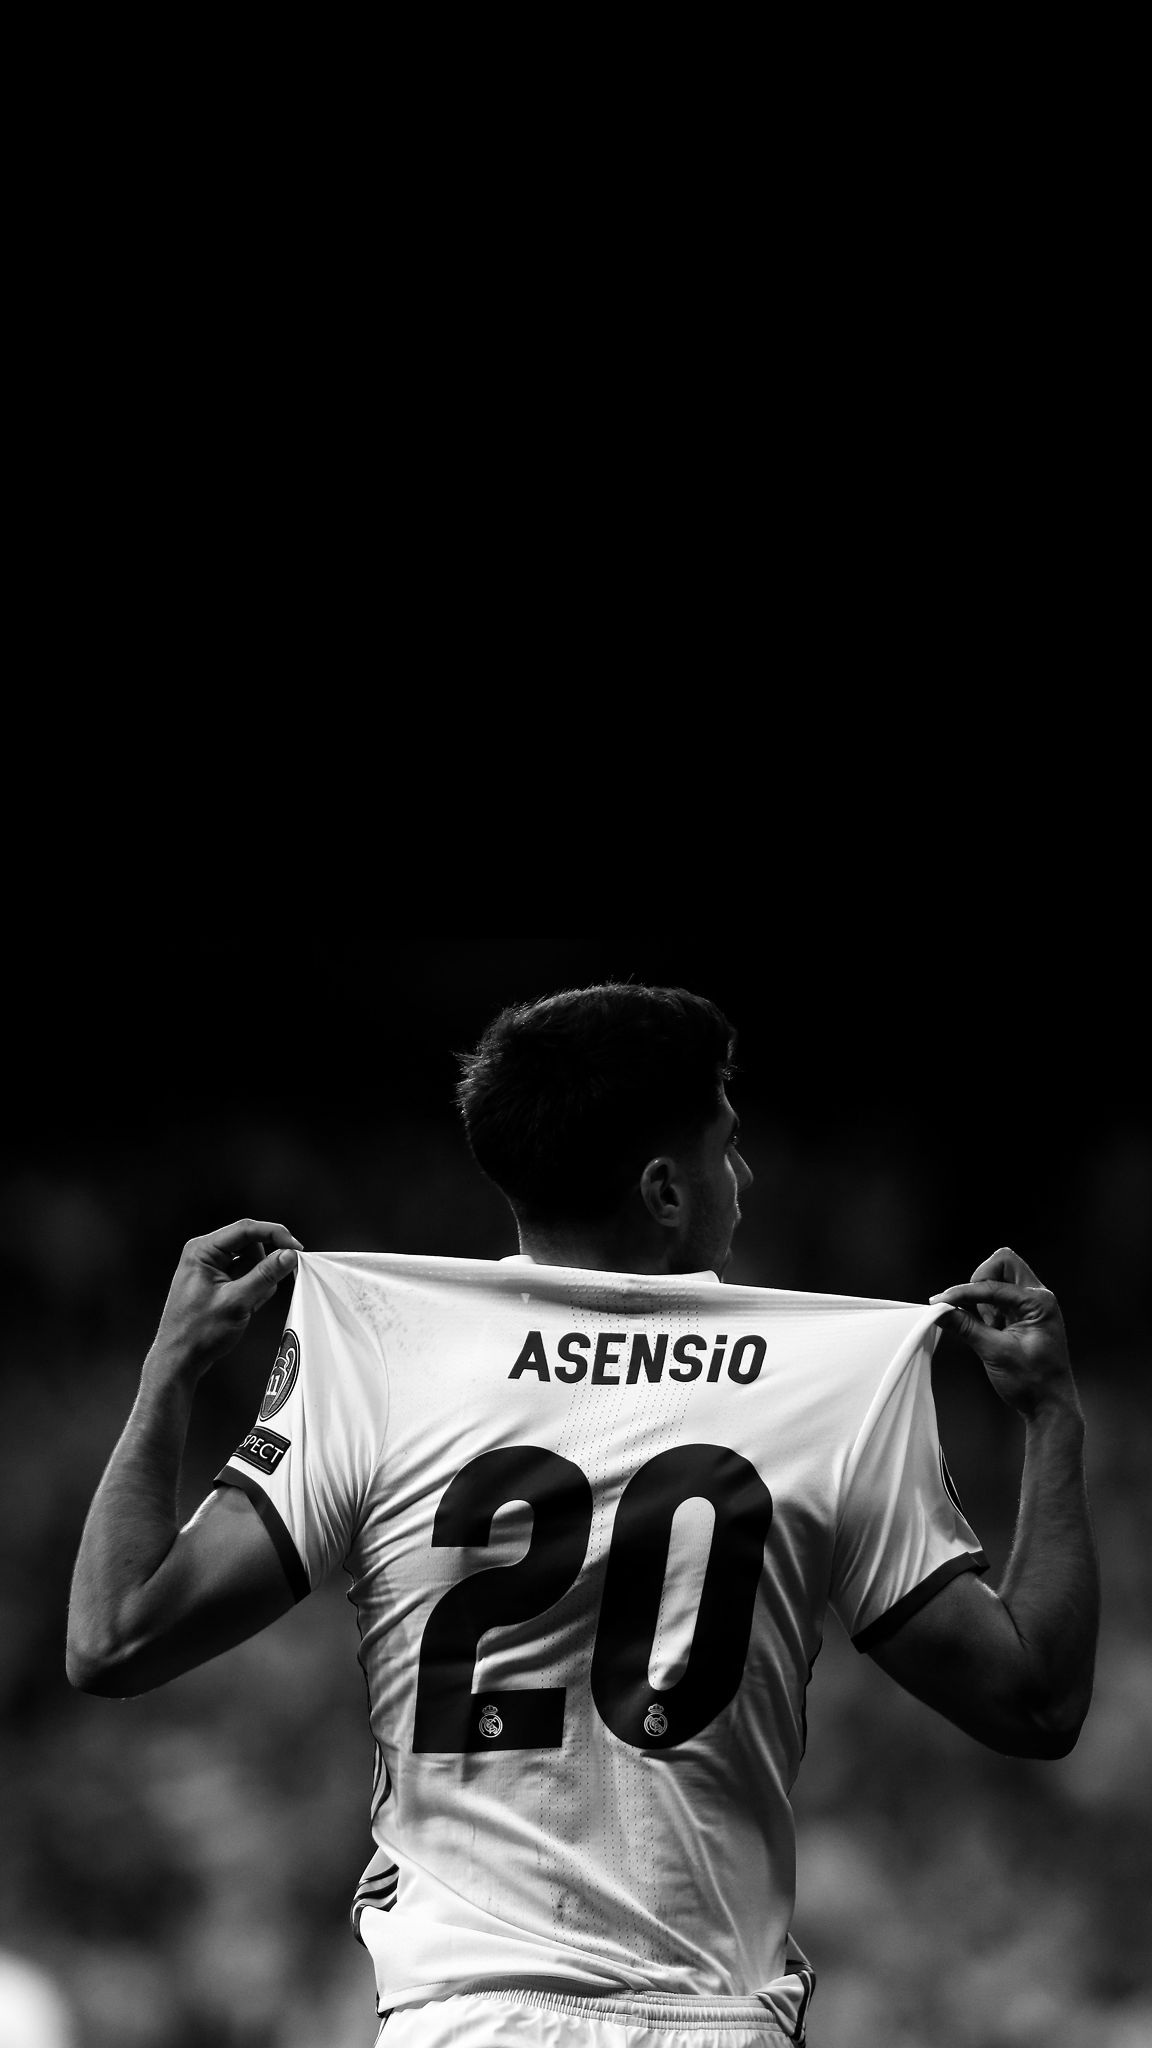 Marco Asensio Wallpapers High Quality   Album on Imgur 1152x2048